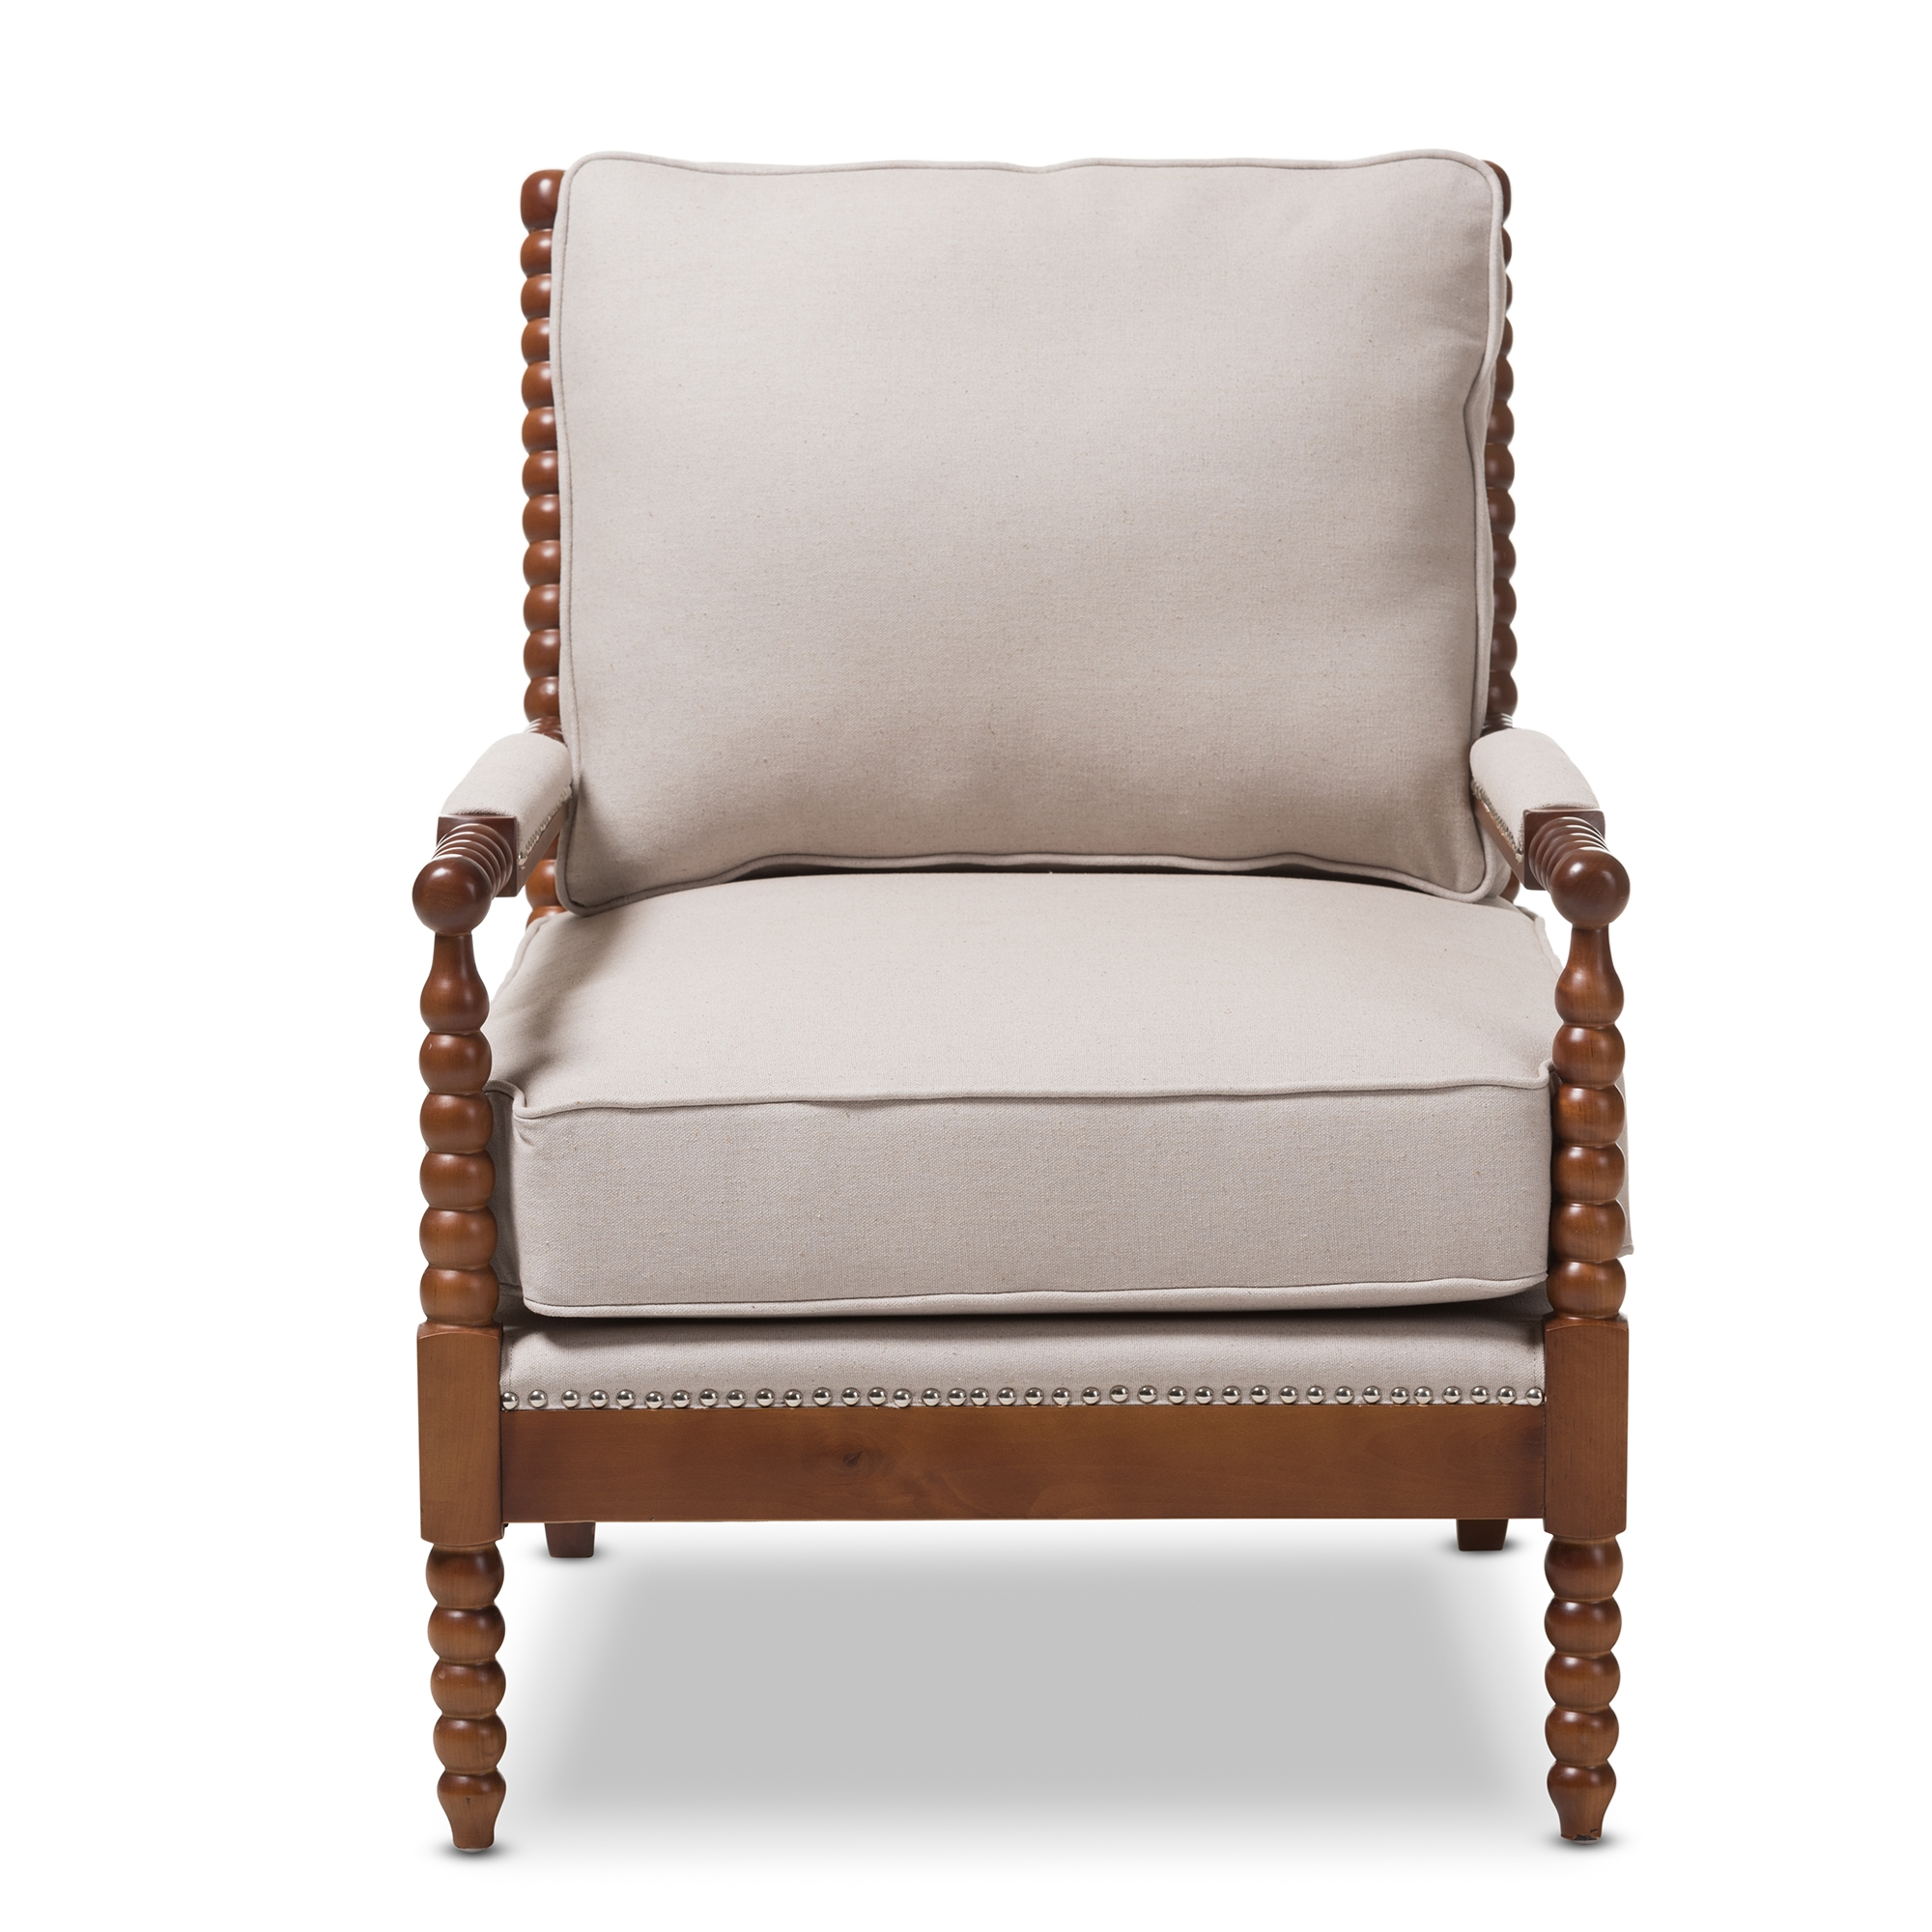 ... Baxton Studio Beaumont Modern Classic Walnut Brown Finish Wood And  Beige Fabric Upholstered Spindle Lounge Chair ...